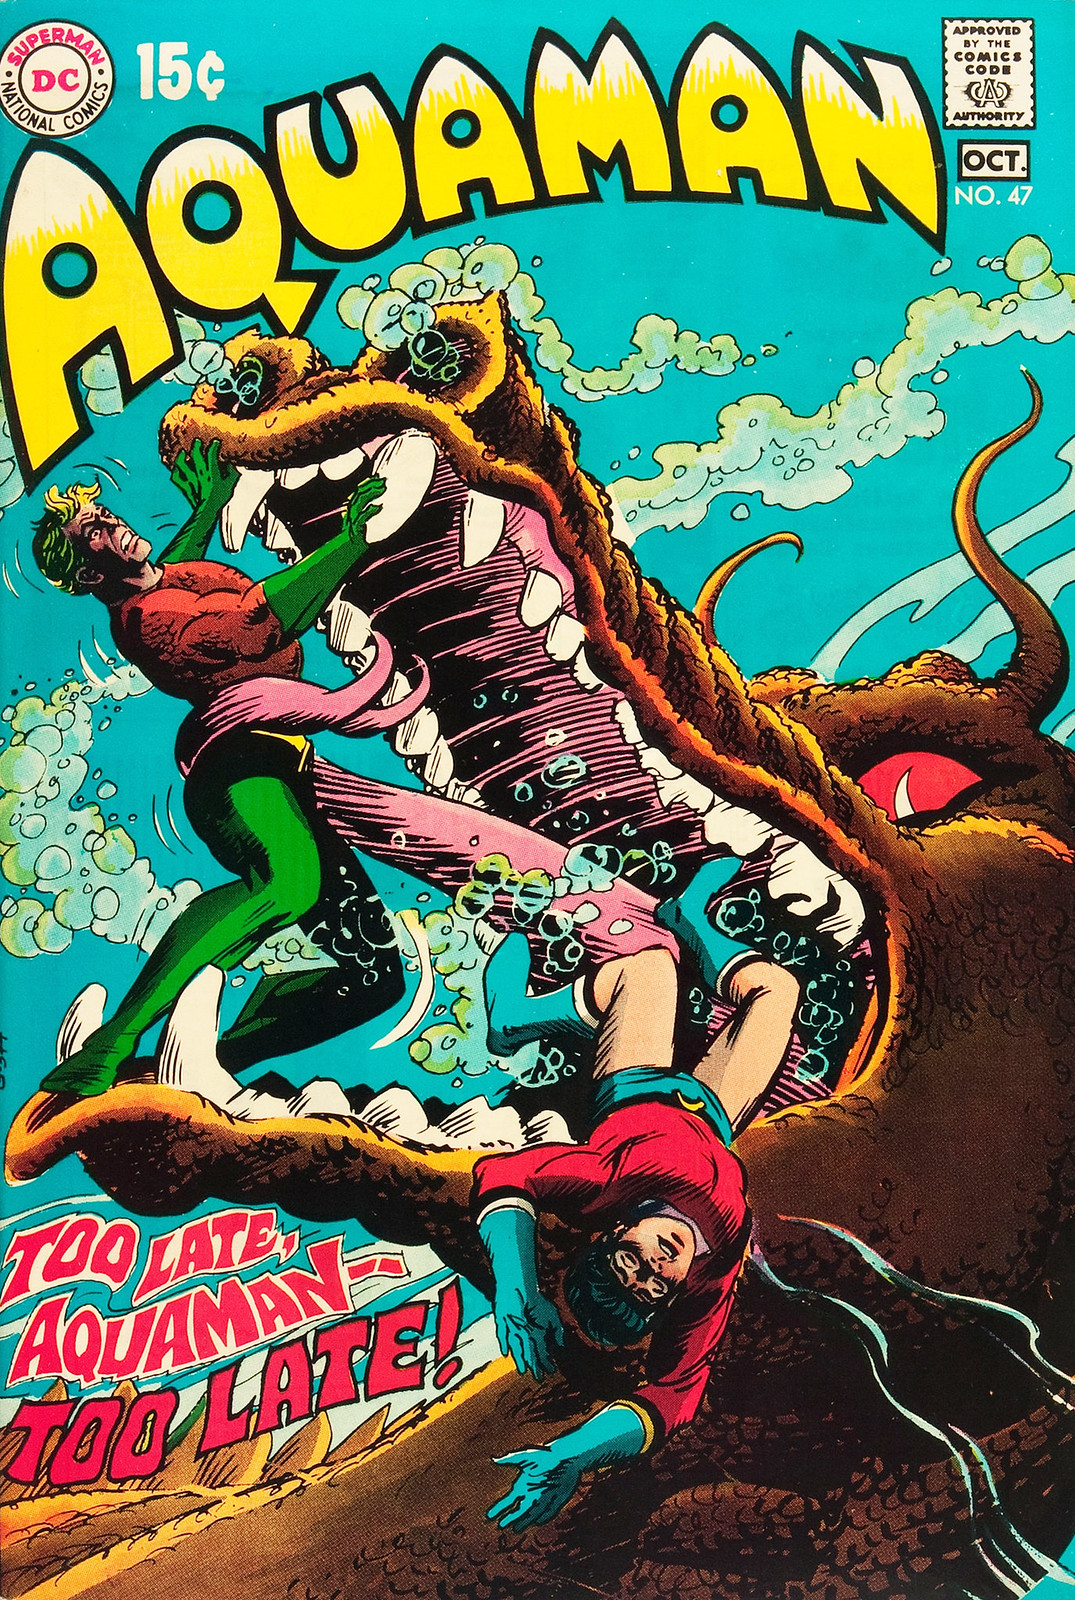 Aquaman #47 (DC, 1969) Nick Cardy Cover